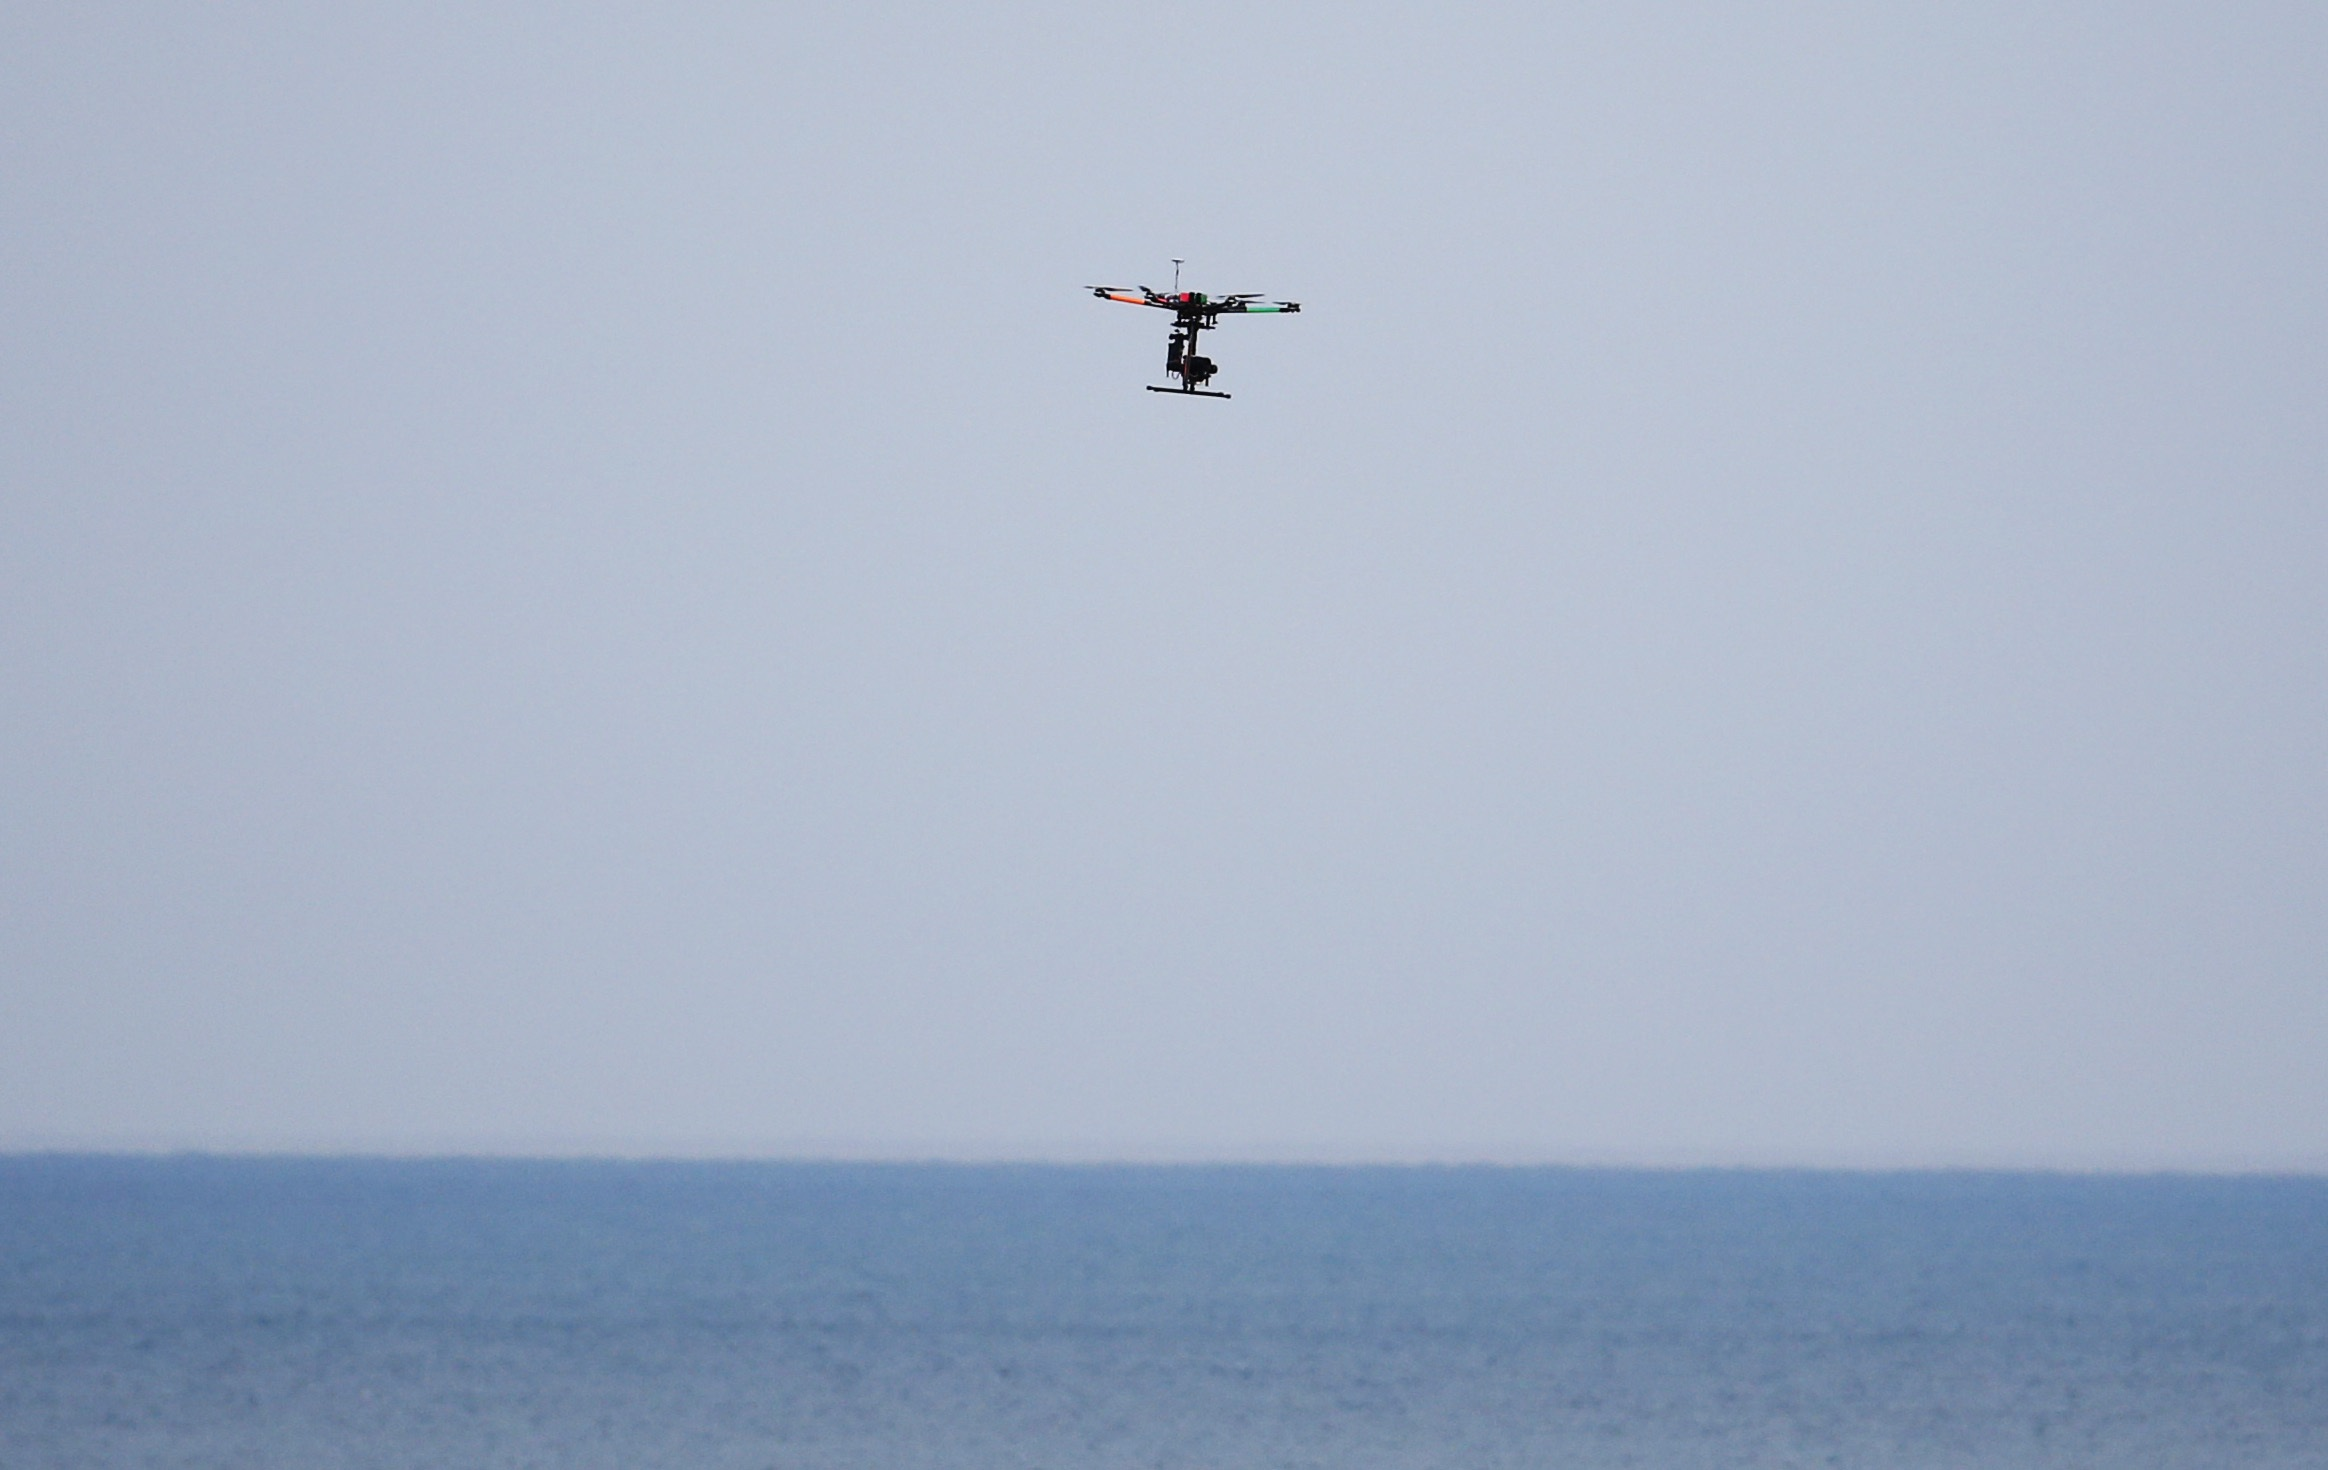 A drone flies near the 17th hole during the first round of the PGA Championship golf tournament Thursday, Aug. 13, 2015, at Whistling Straits in Haven, Wis. (AP Photo/Julio Cortez)